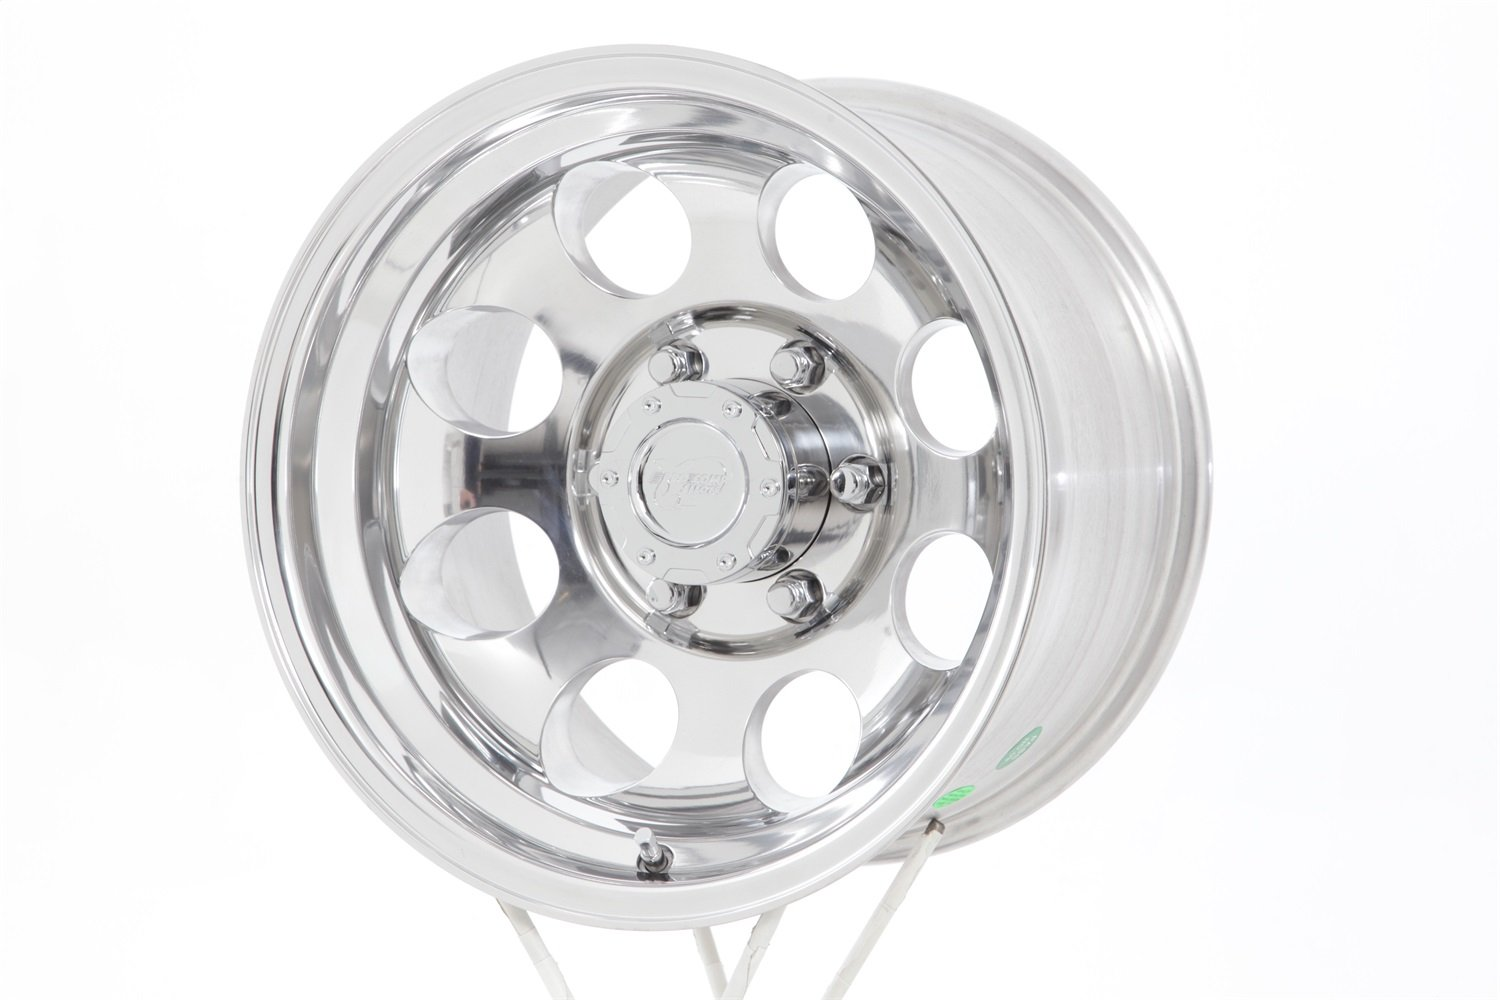 Pro Comp Alloys Series 69 Wheel with Polished Finish (17x9''/6x139.7mm)